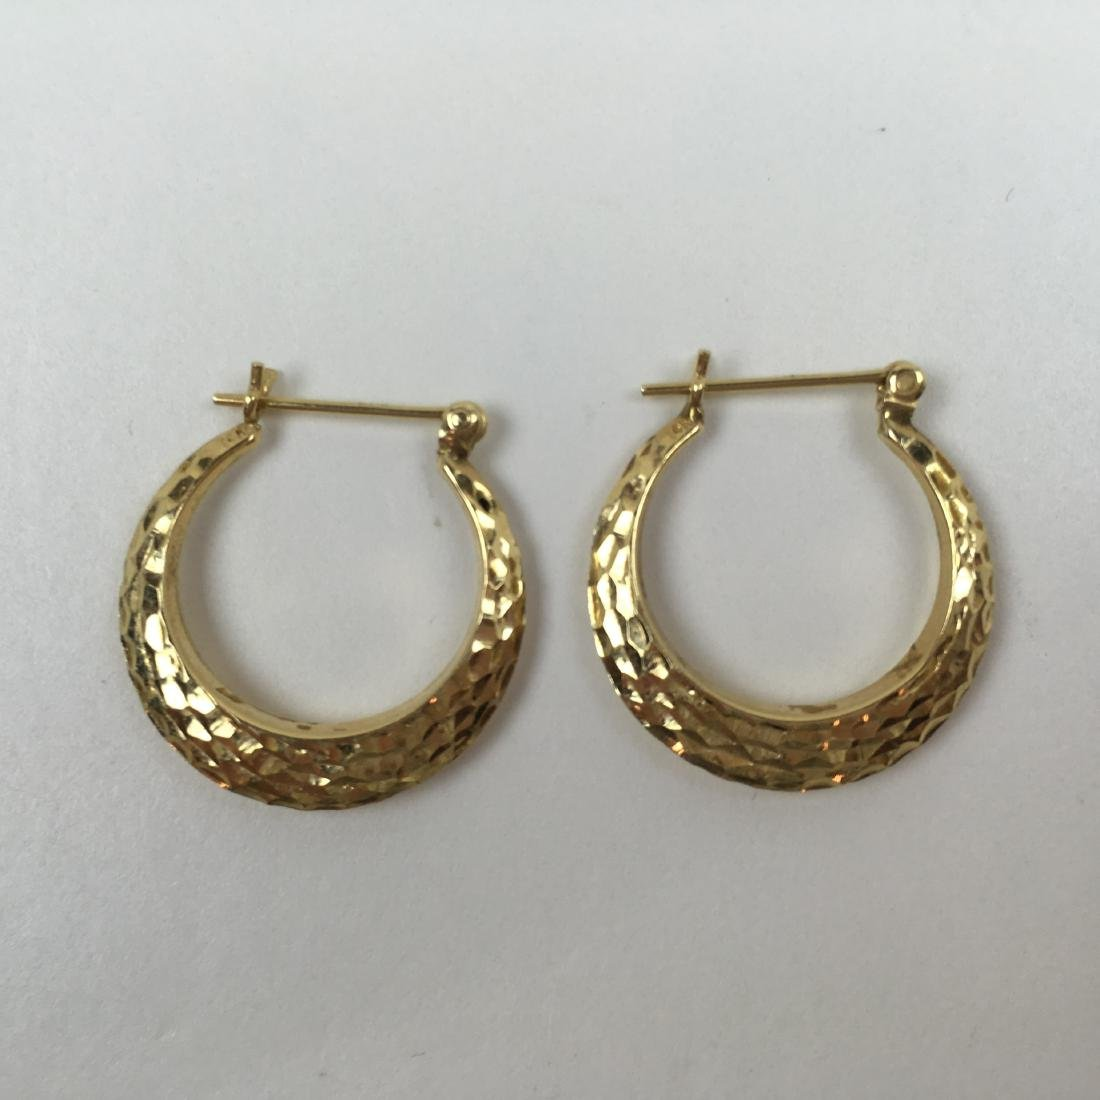 2 PRS OF 14K YELLOW GOLD EARRINGS - 7